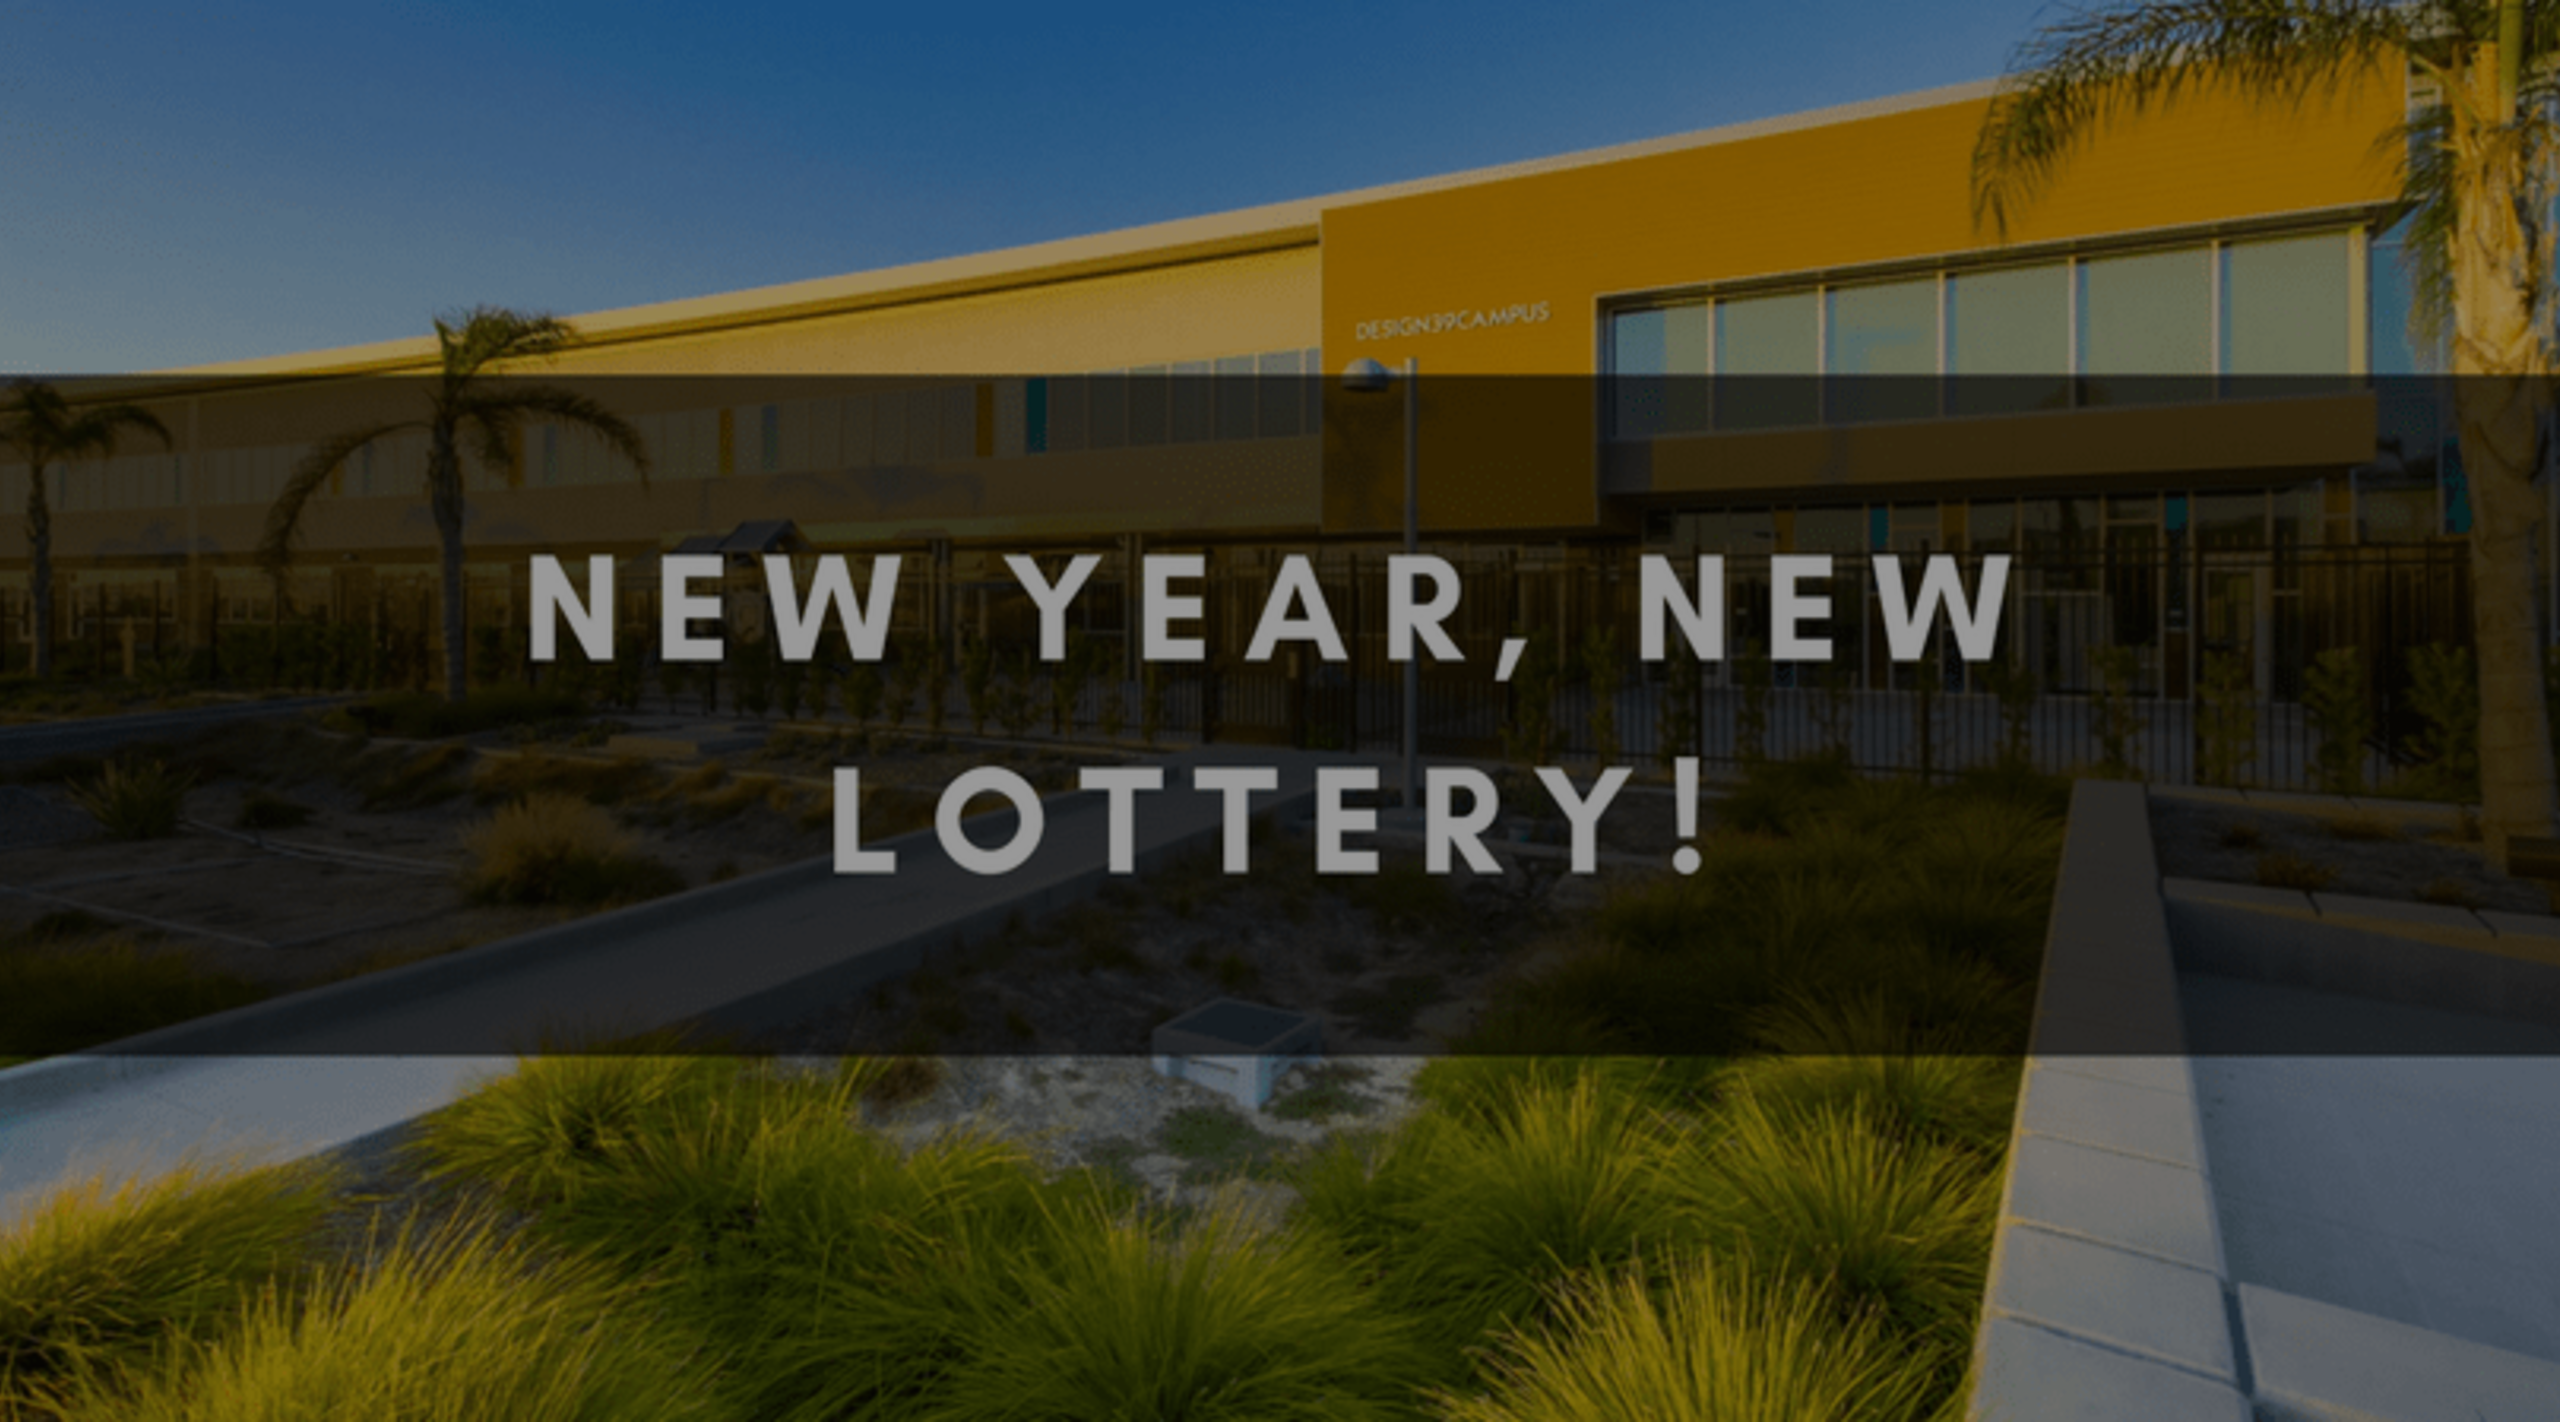 NEW YEAR, NEW LOTTERY!